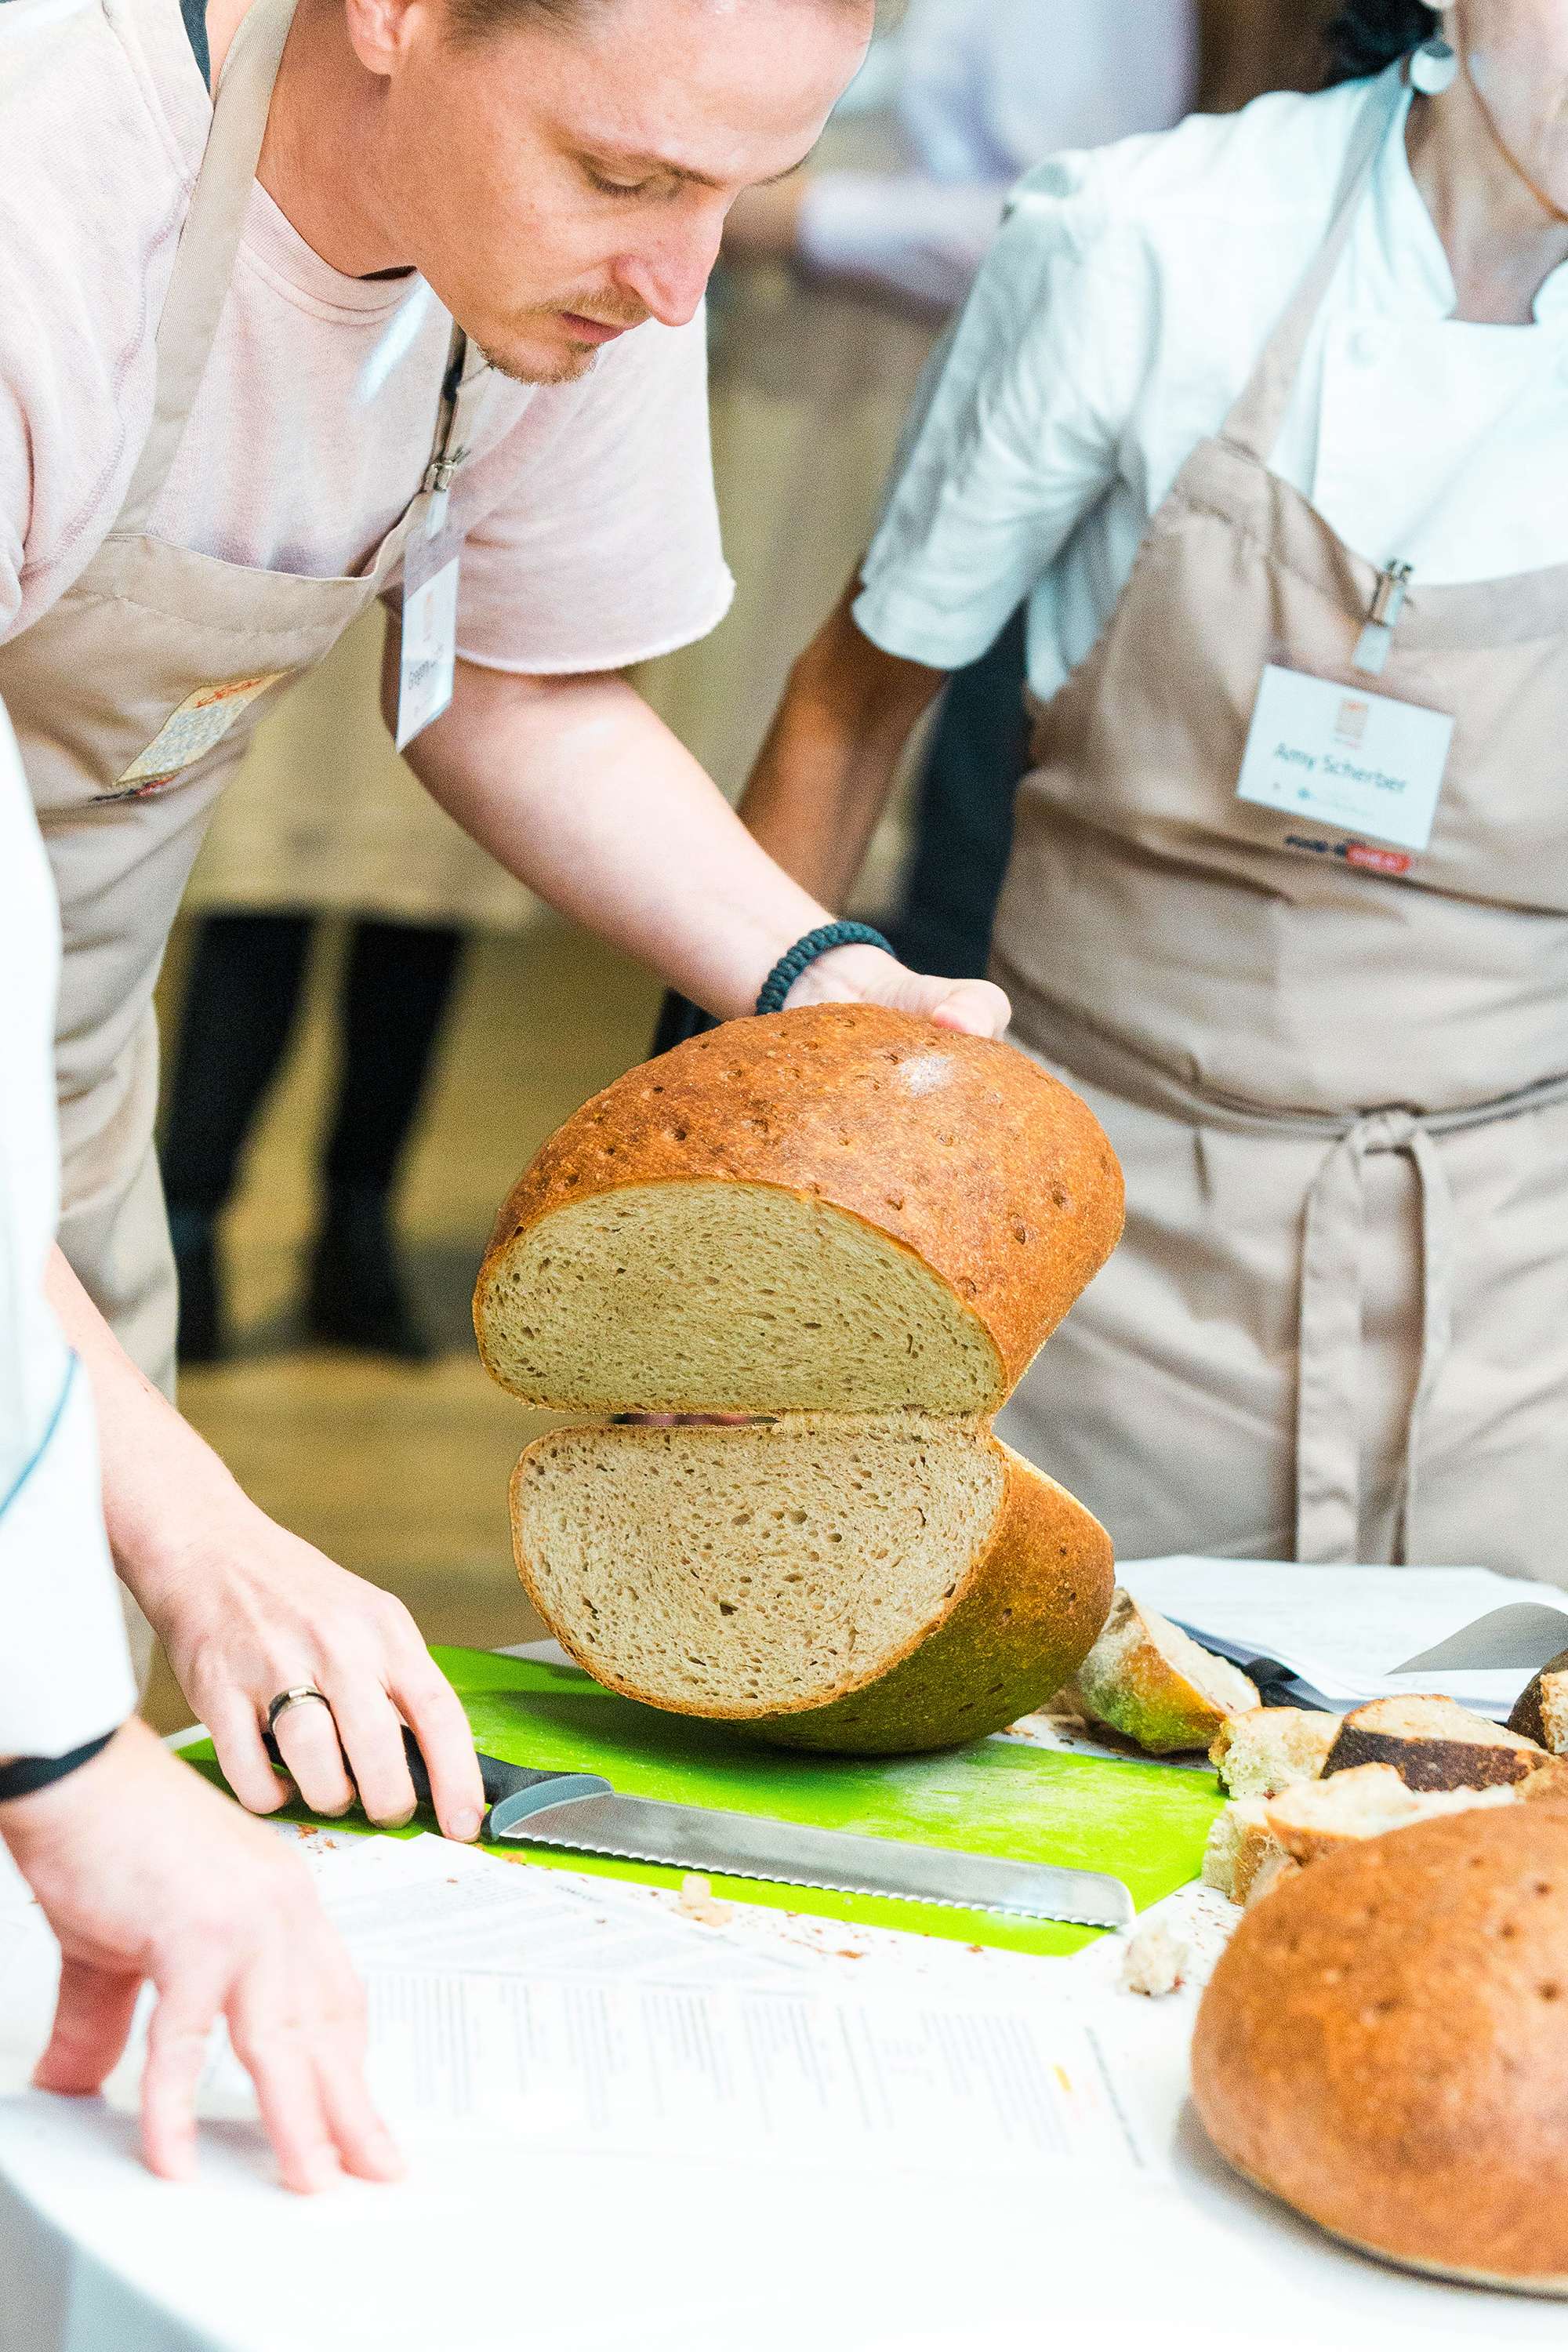 world bread awards usa judging man cutting open entry